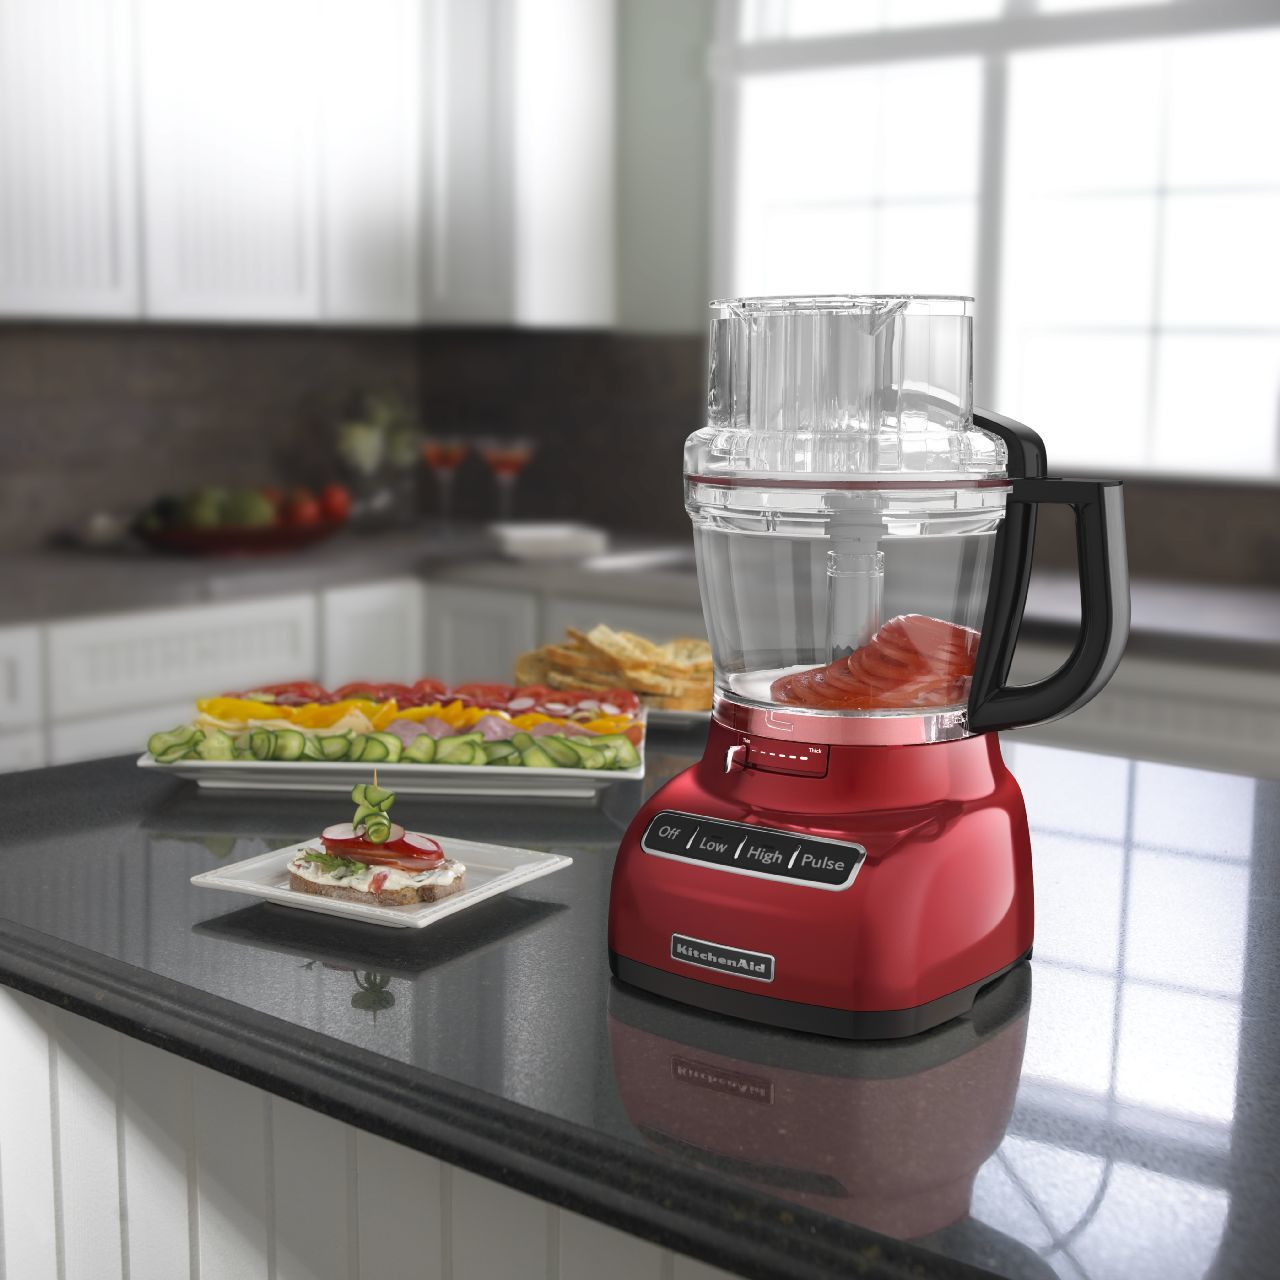 KitchenAid: 13 Cup Food Processor - Empire Red image